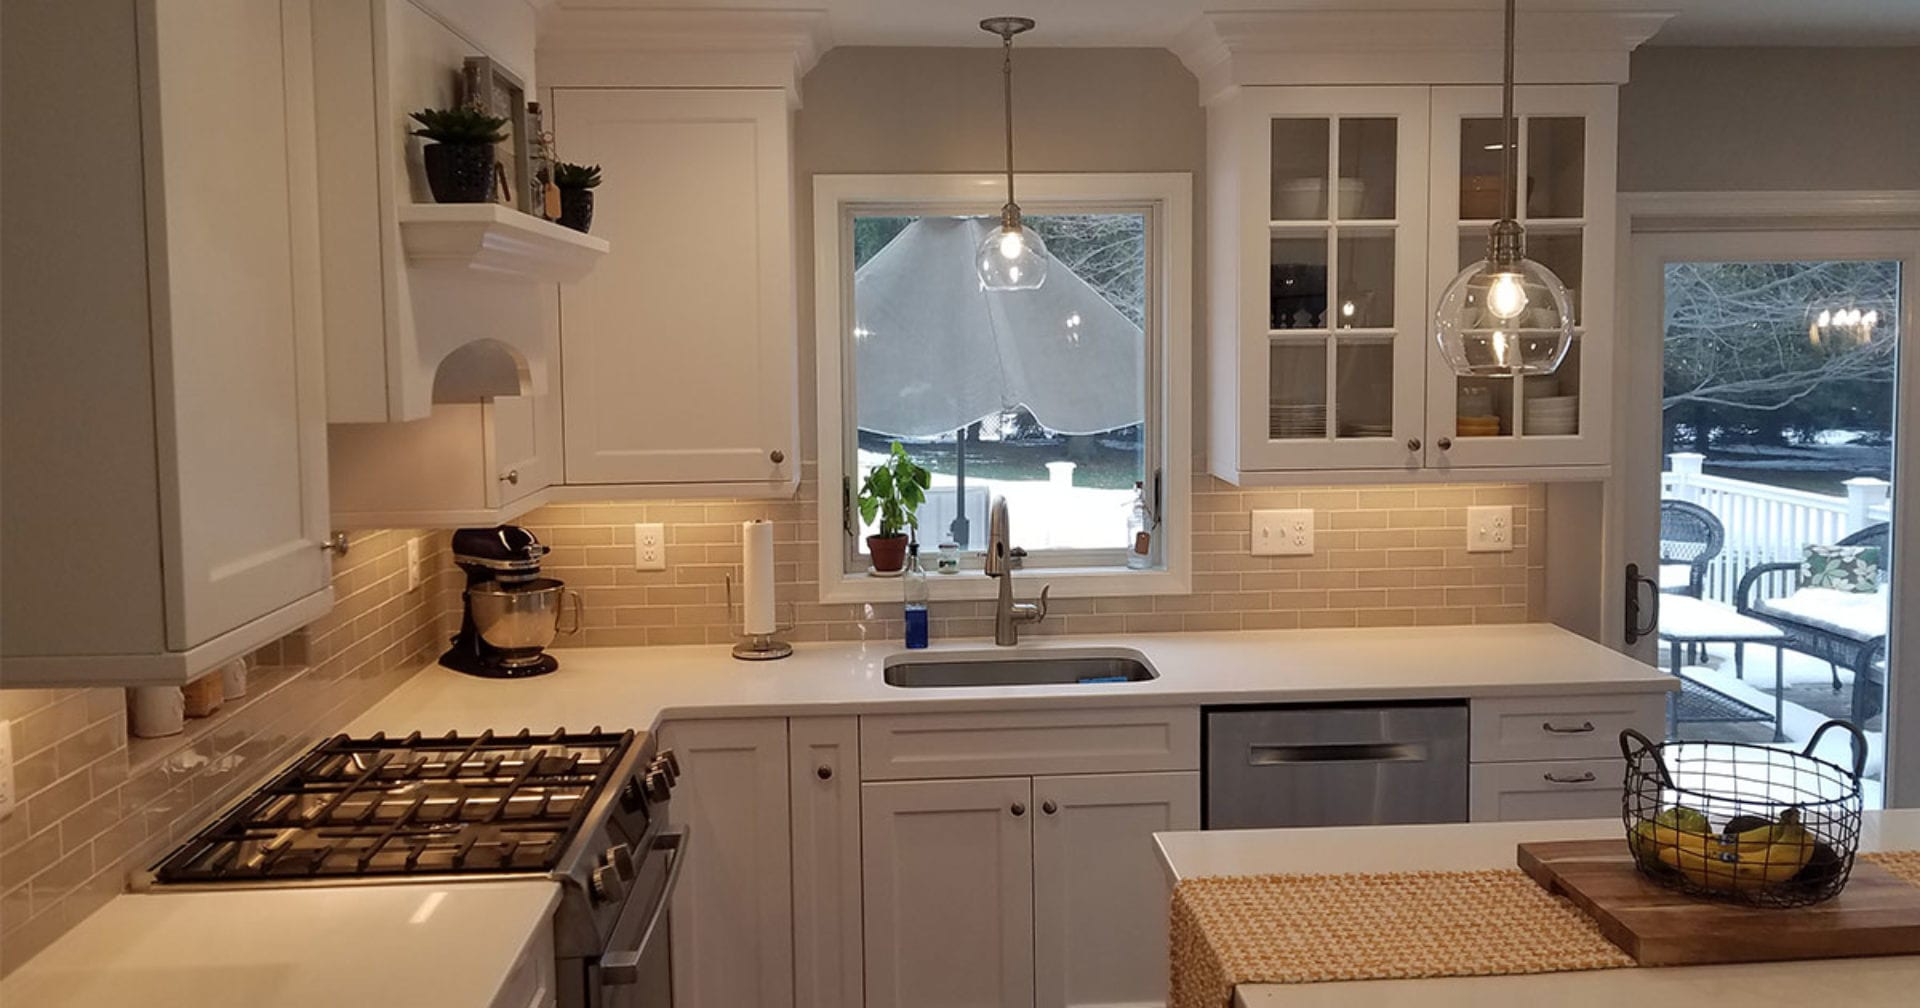 Considerations for an Old Kitchen Makeover - All Trades